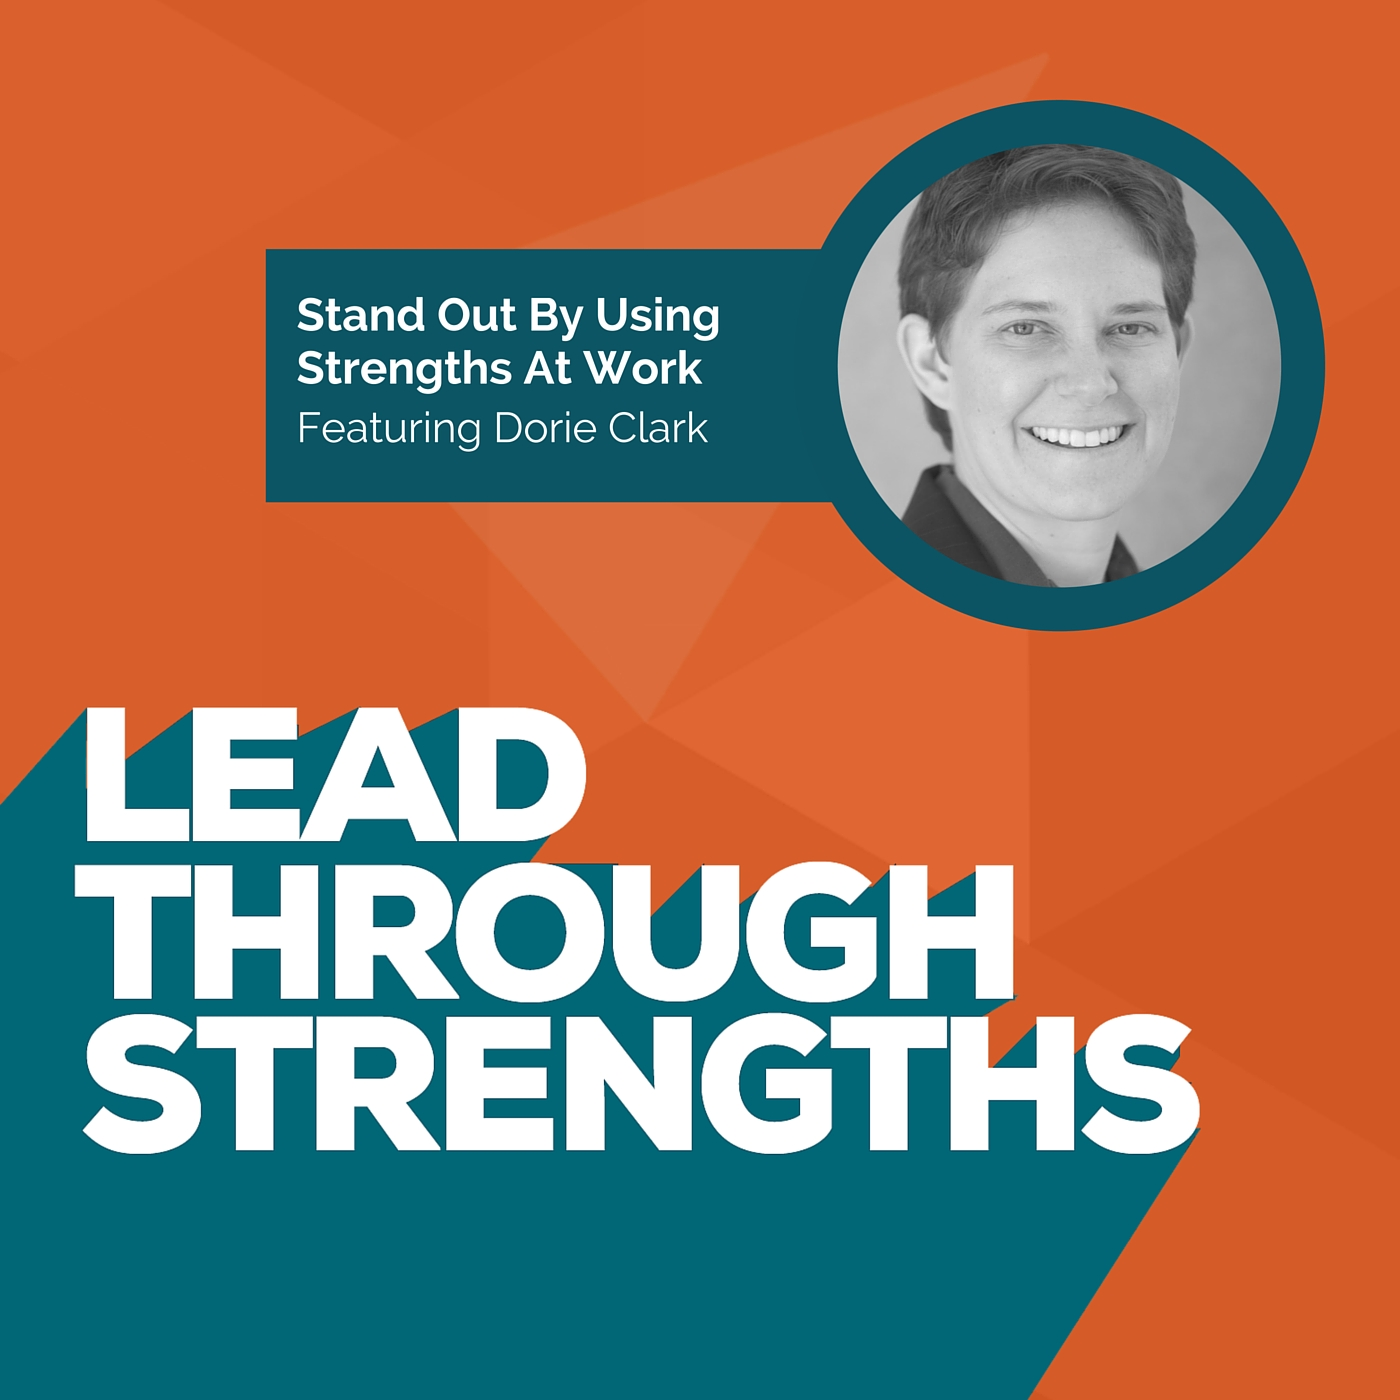 Standing Out By Using Your Strengths At Work - With Dorie Clark